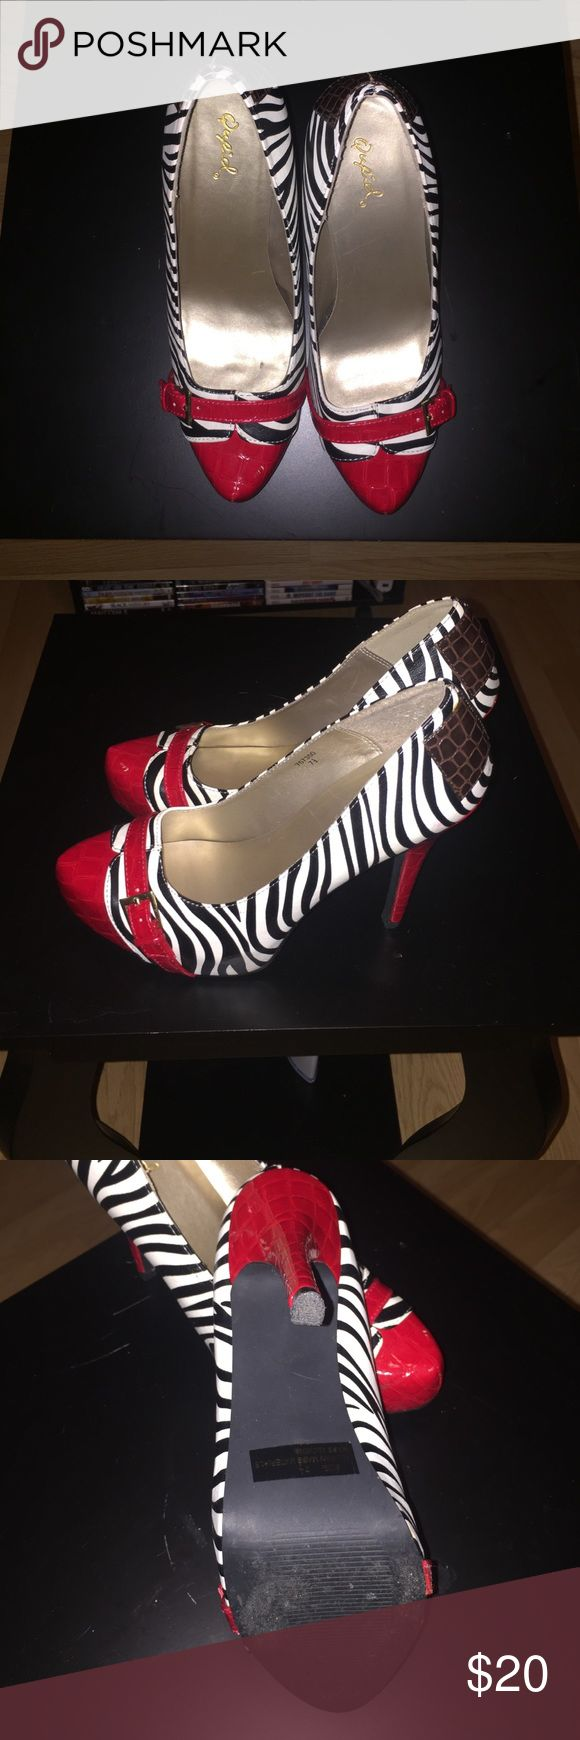 Zebra heels Zebra and red heels. practically new, only worn once Qupid Shoes Heels